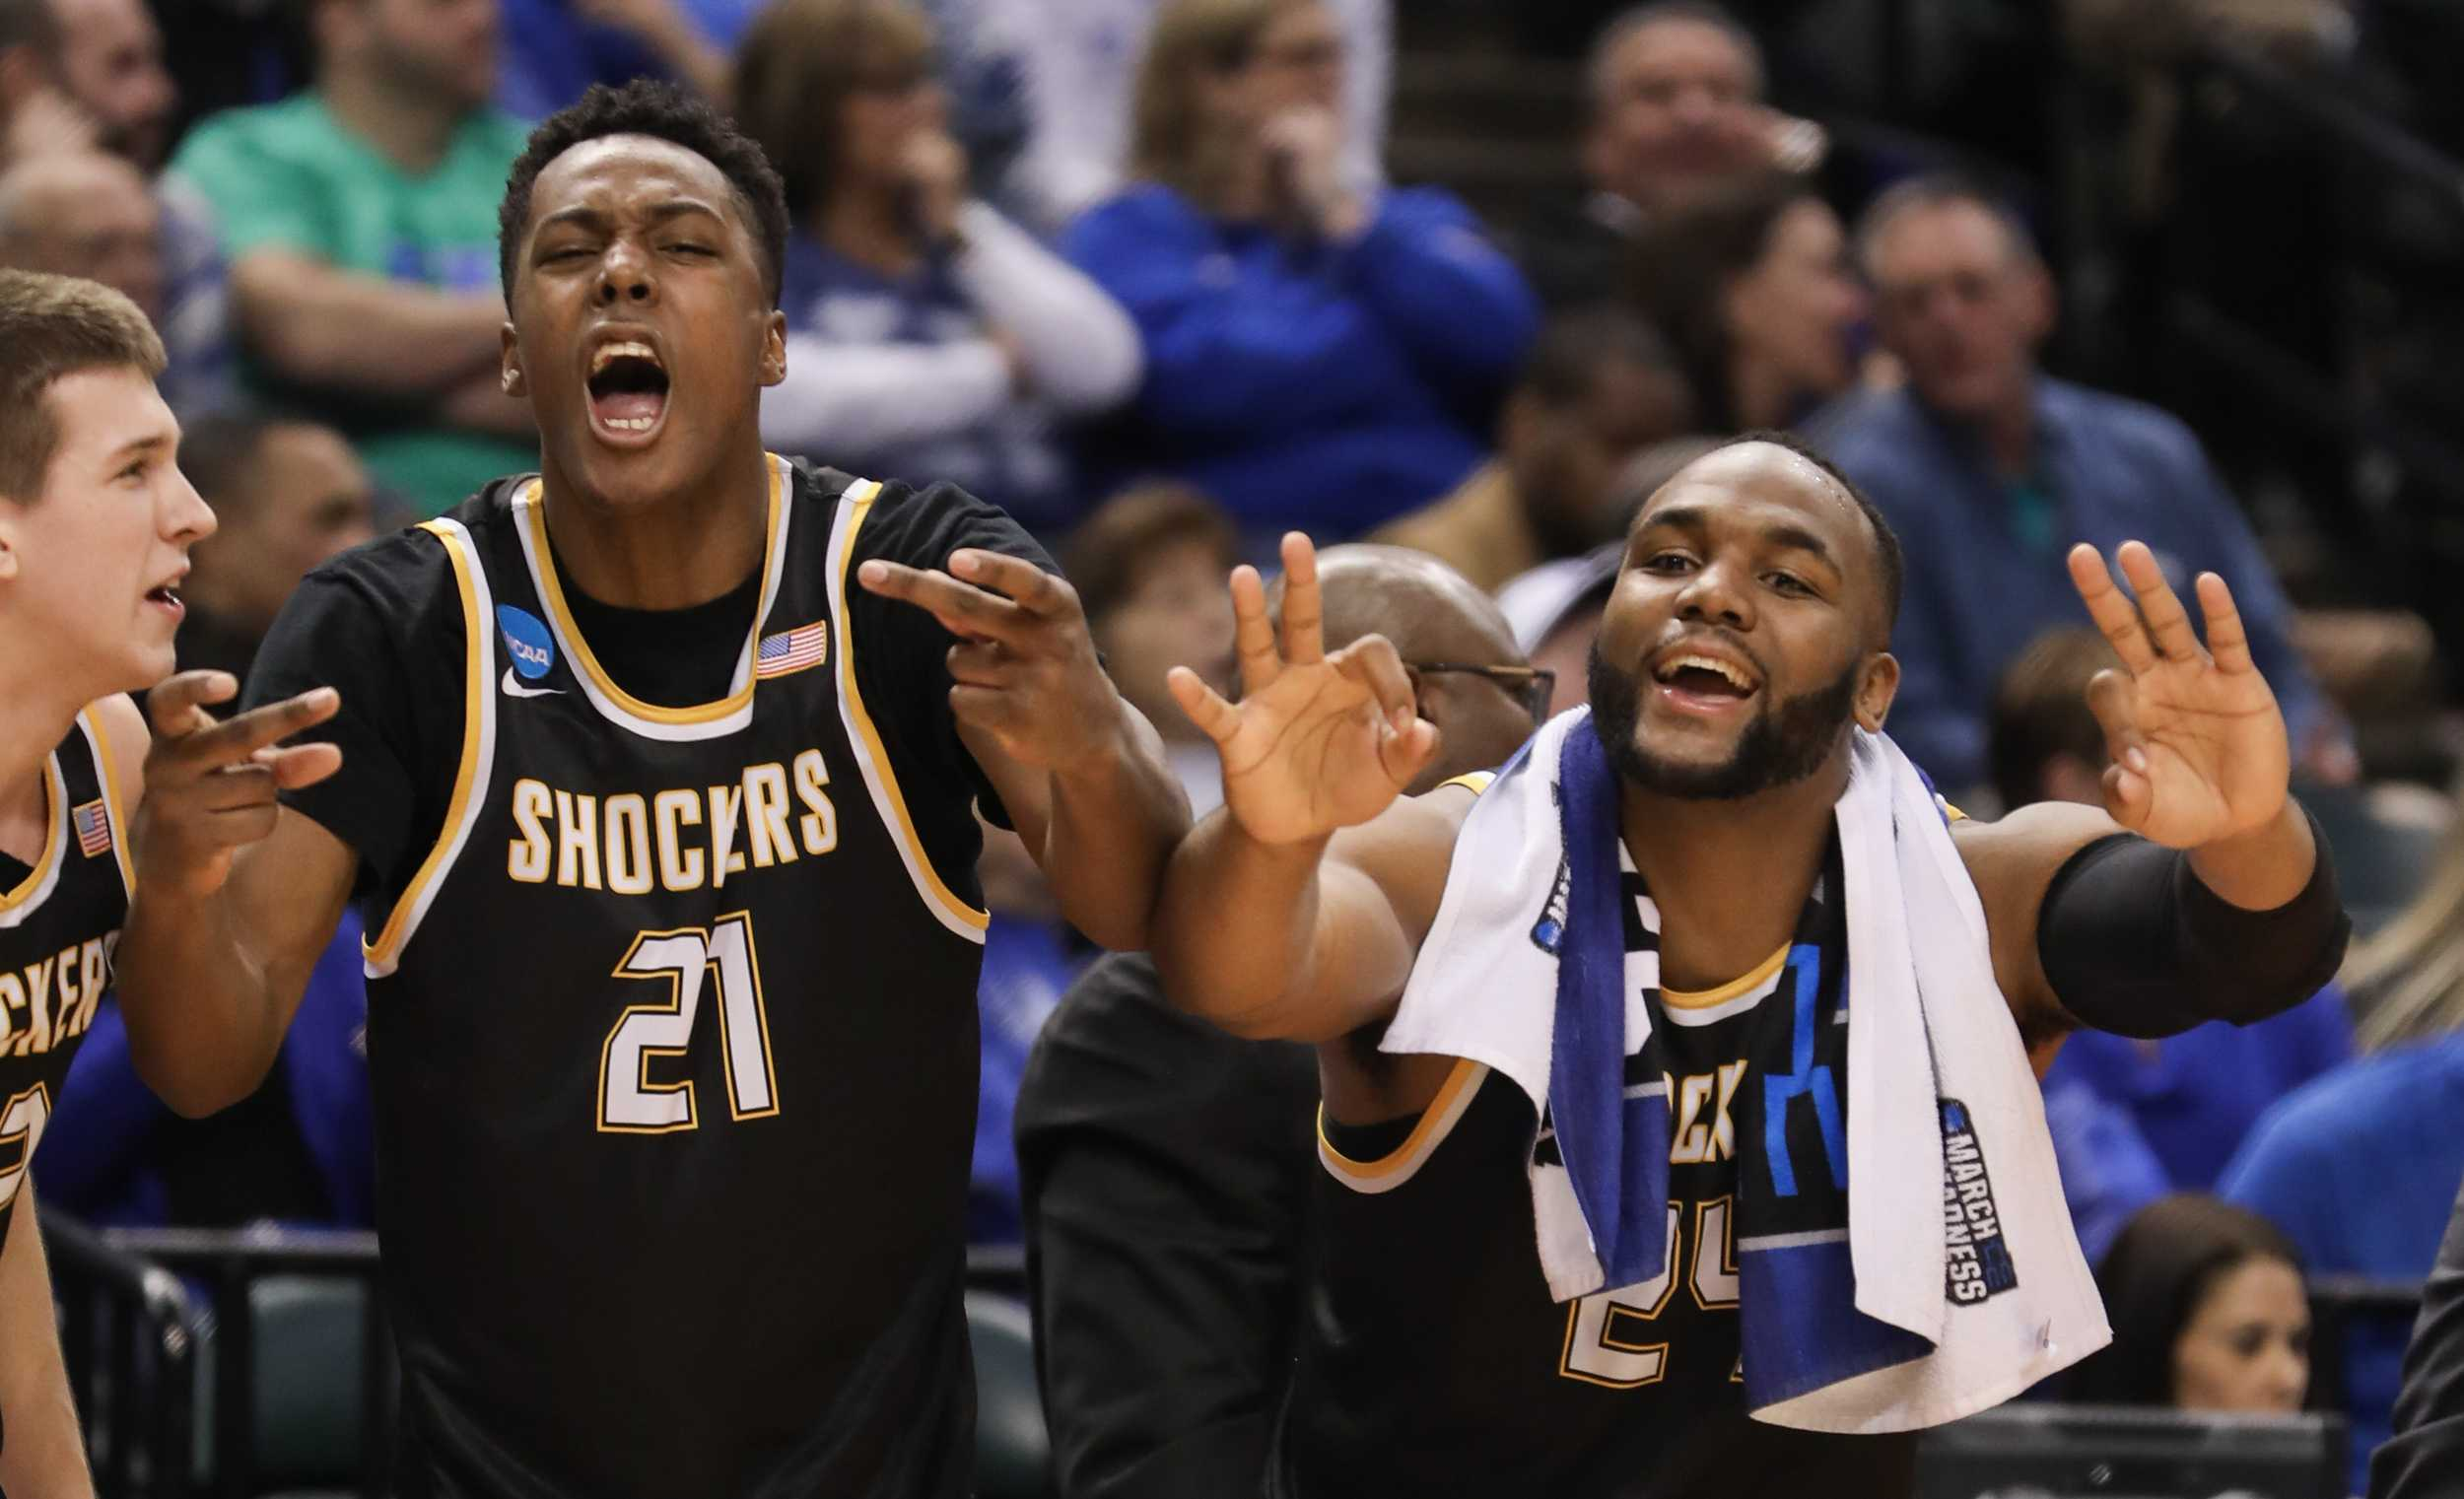 Wichita State's Darral Willis (21) and Shaquille Morris (24) celebrate a teammate's three-point bucket against Dayton in the second half at Bankers Life Fieldhouse in Indianapolis. (Mar. 17, 2017)